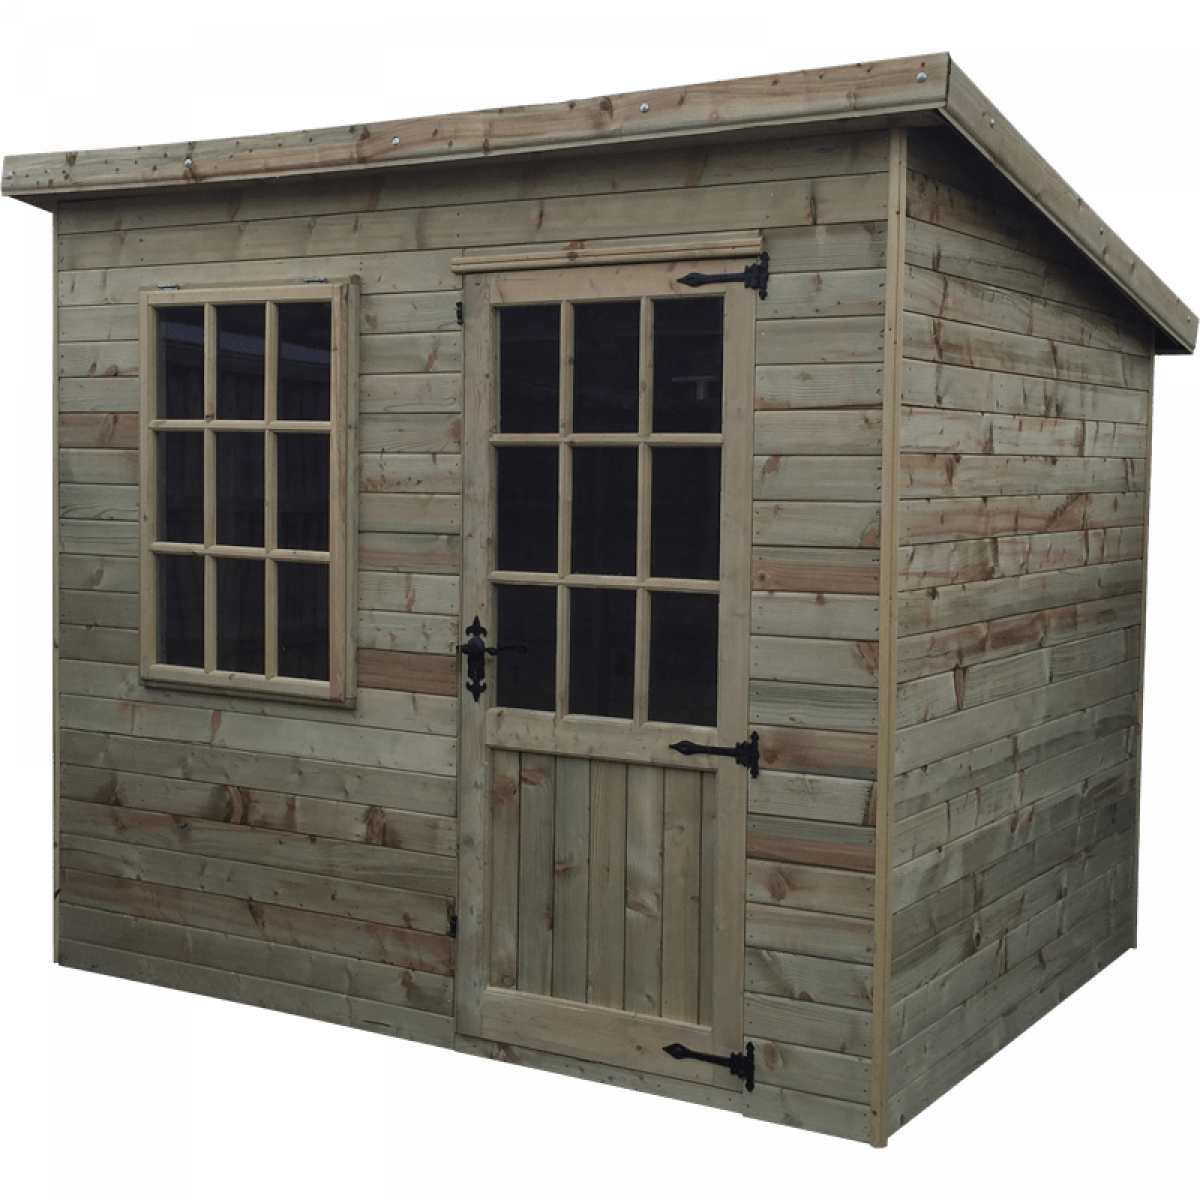 pent shed Image by Websters Timber